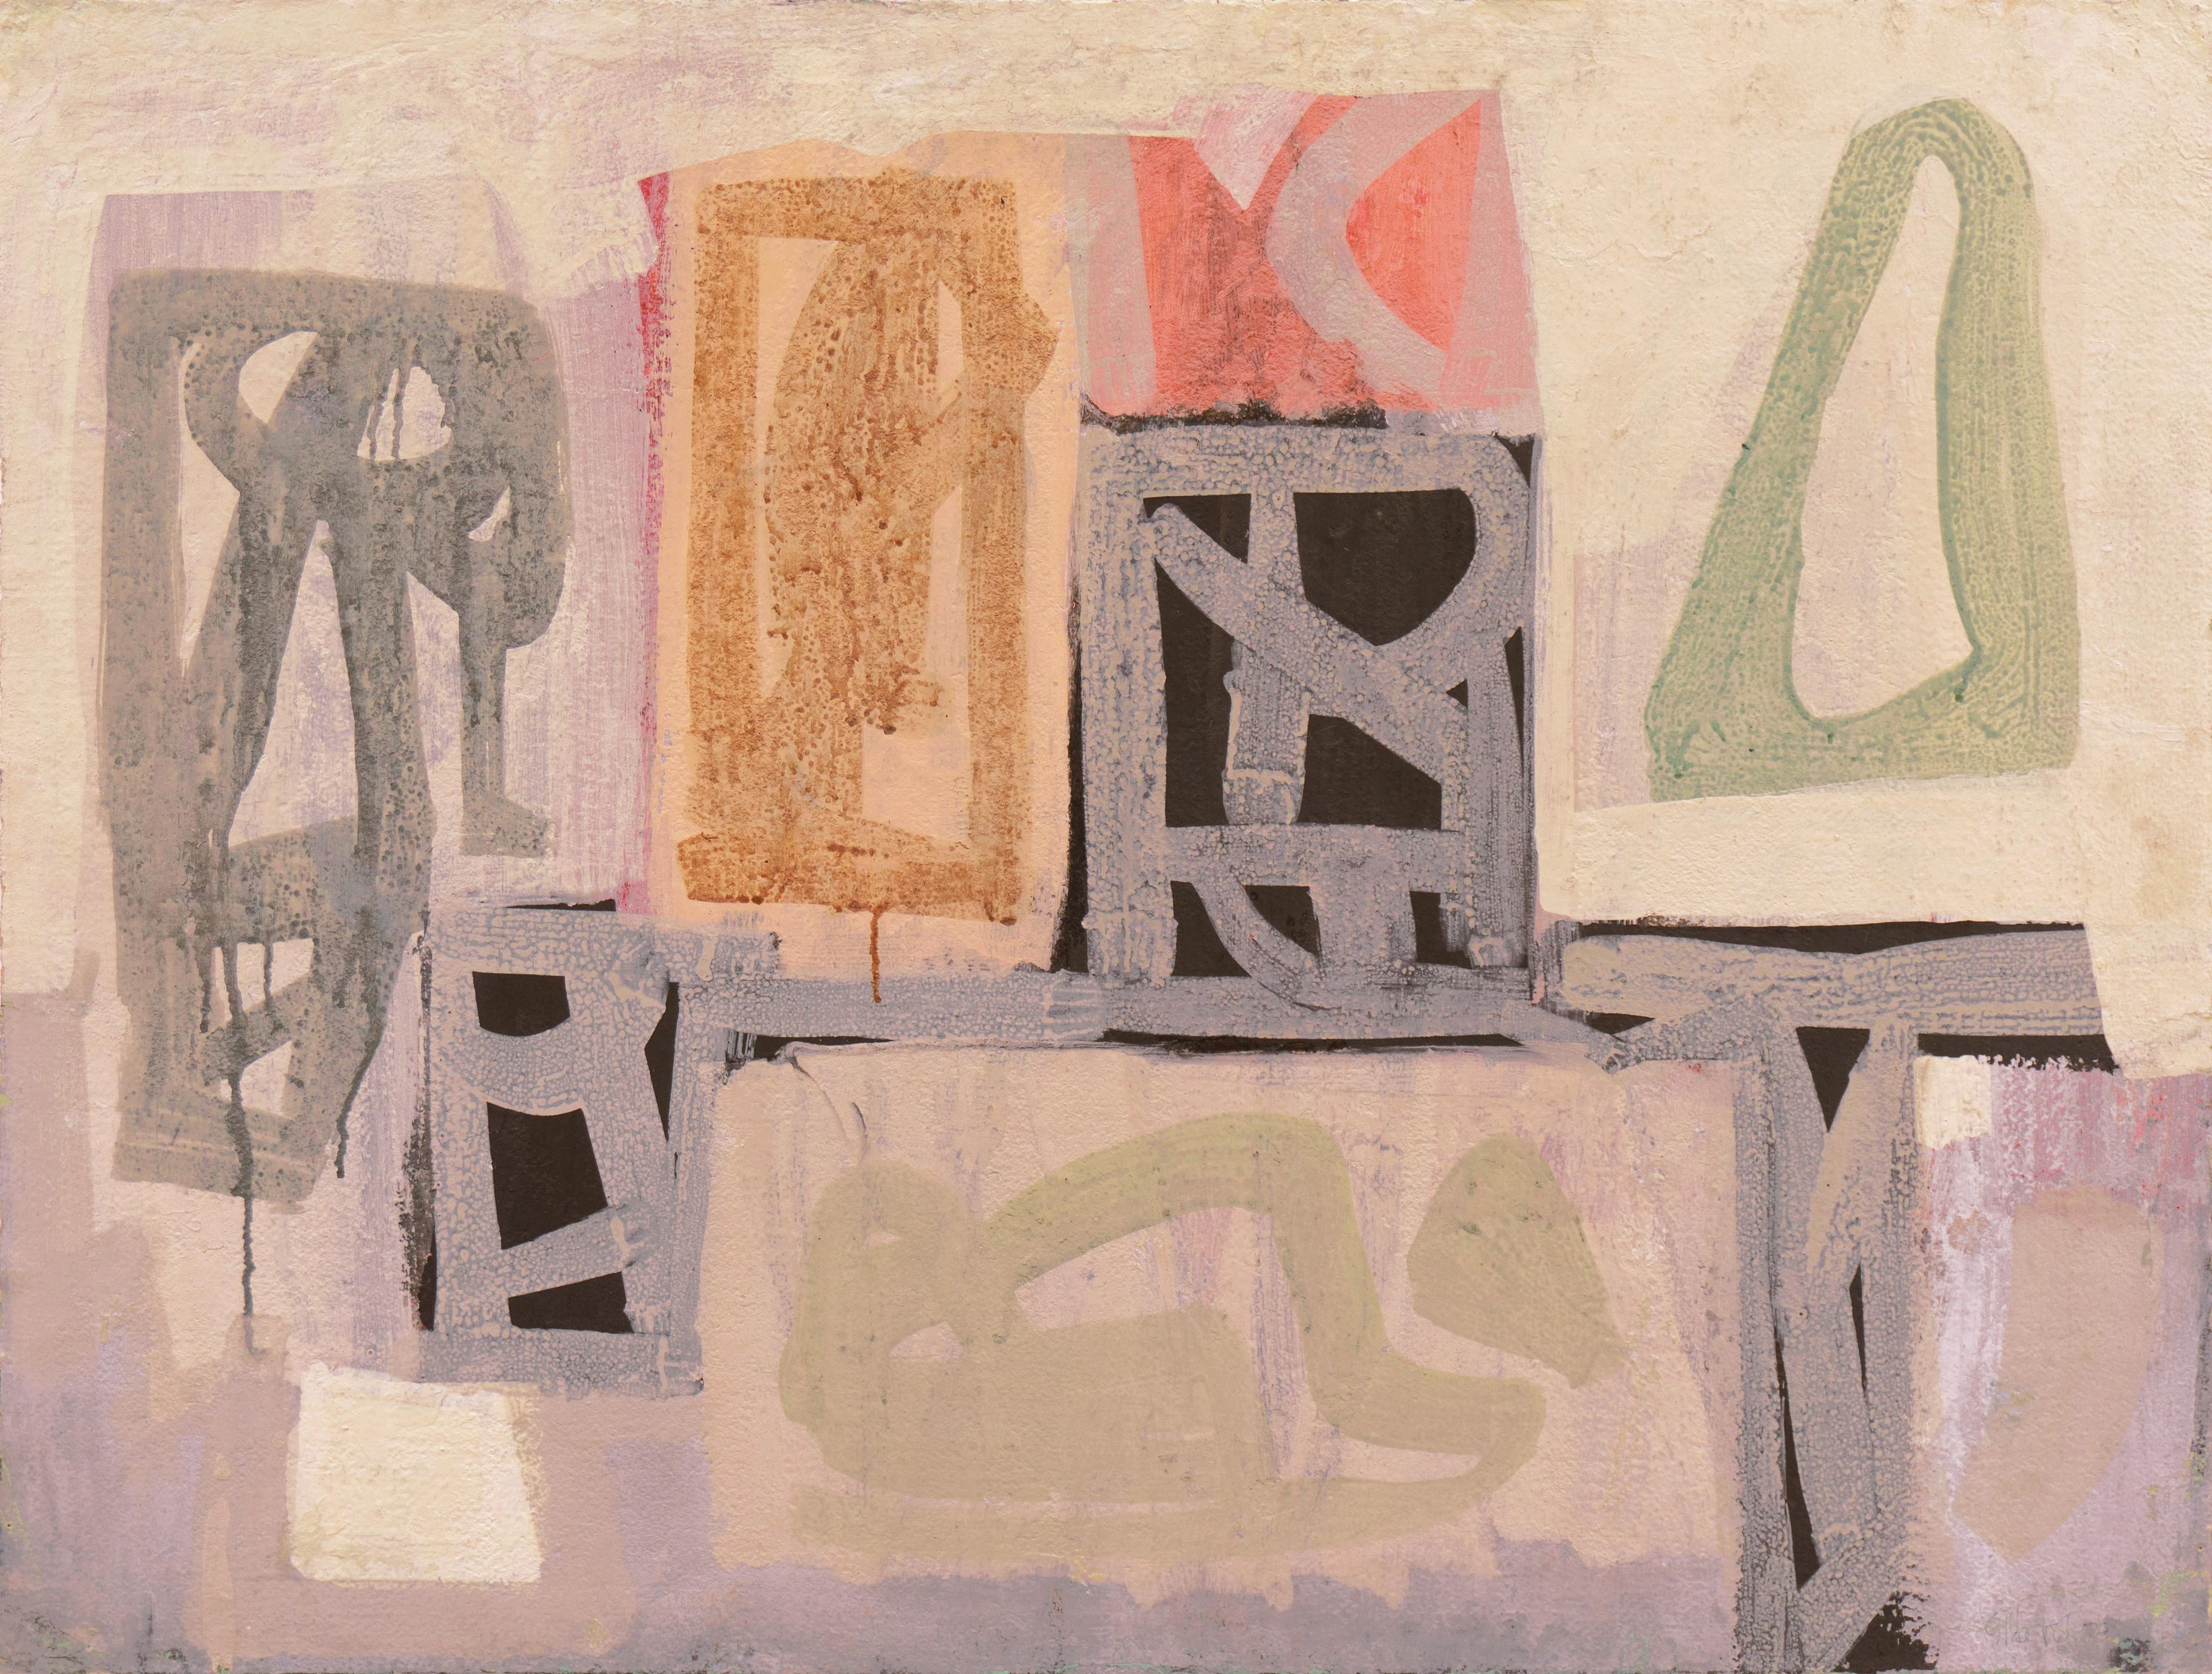 'Forms in Charcoal and Jade', San Francisco Bay Area Abstraction, SFMFA, CWS